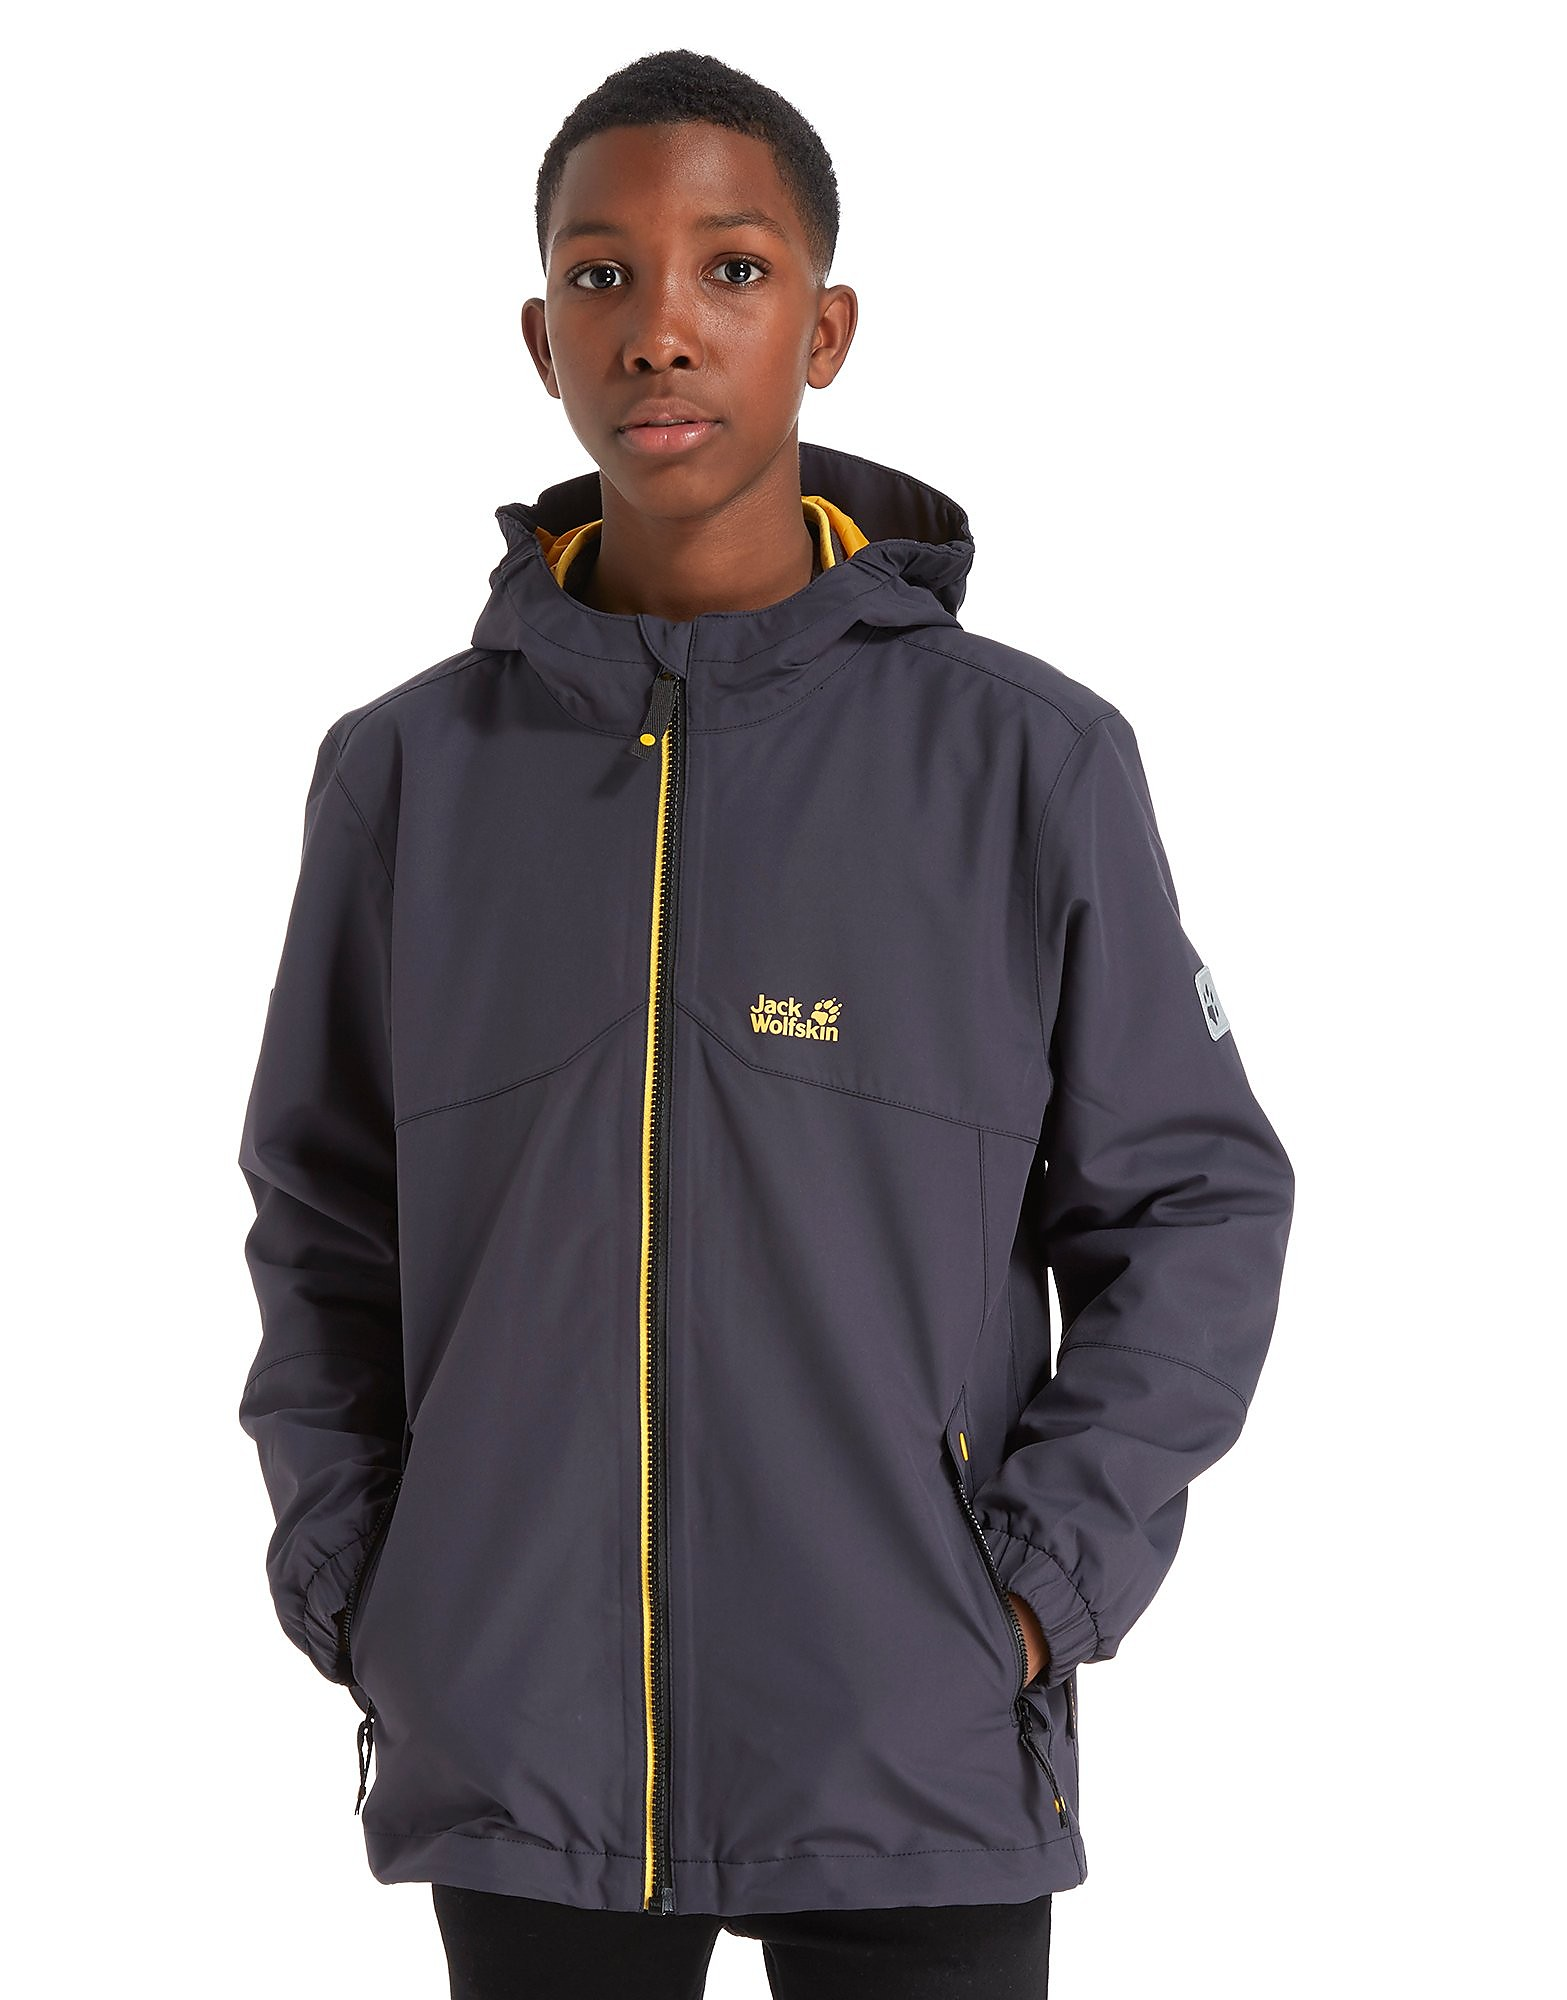 Jack Wolfskin Iceland 3-in-1 Jacket Junior